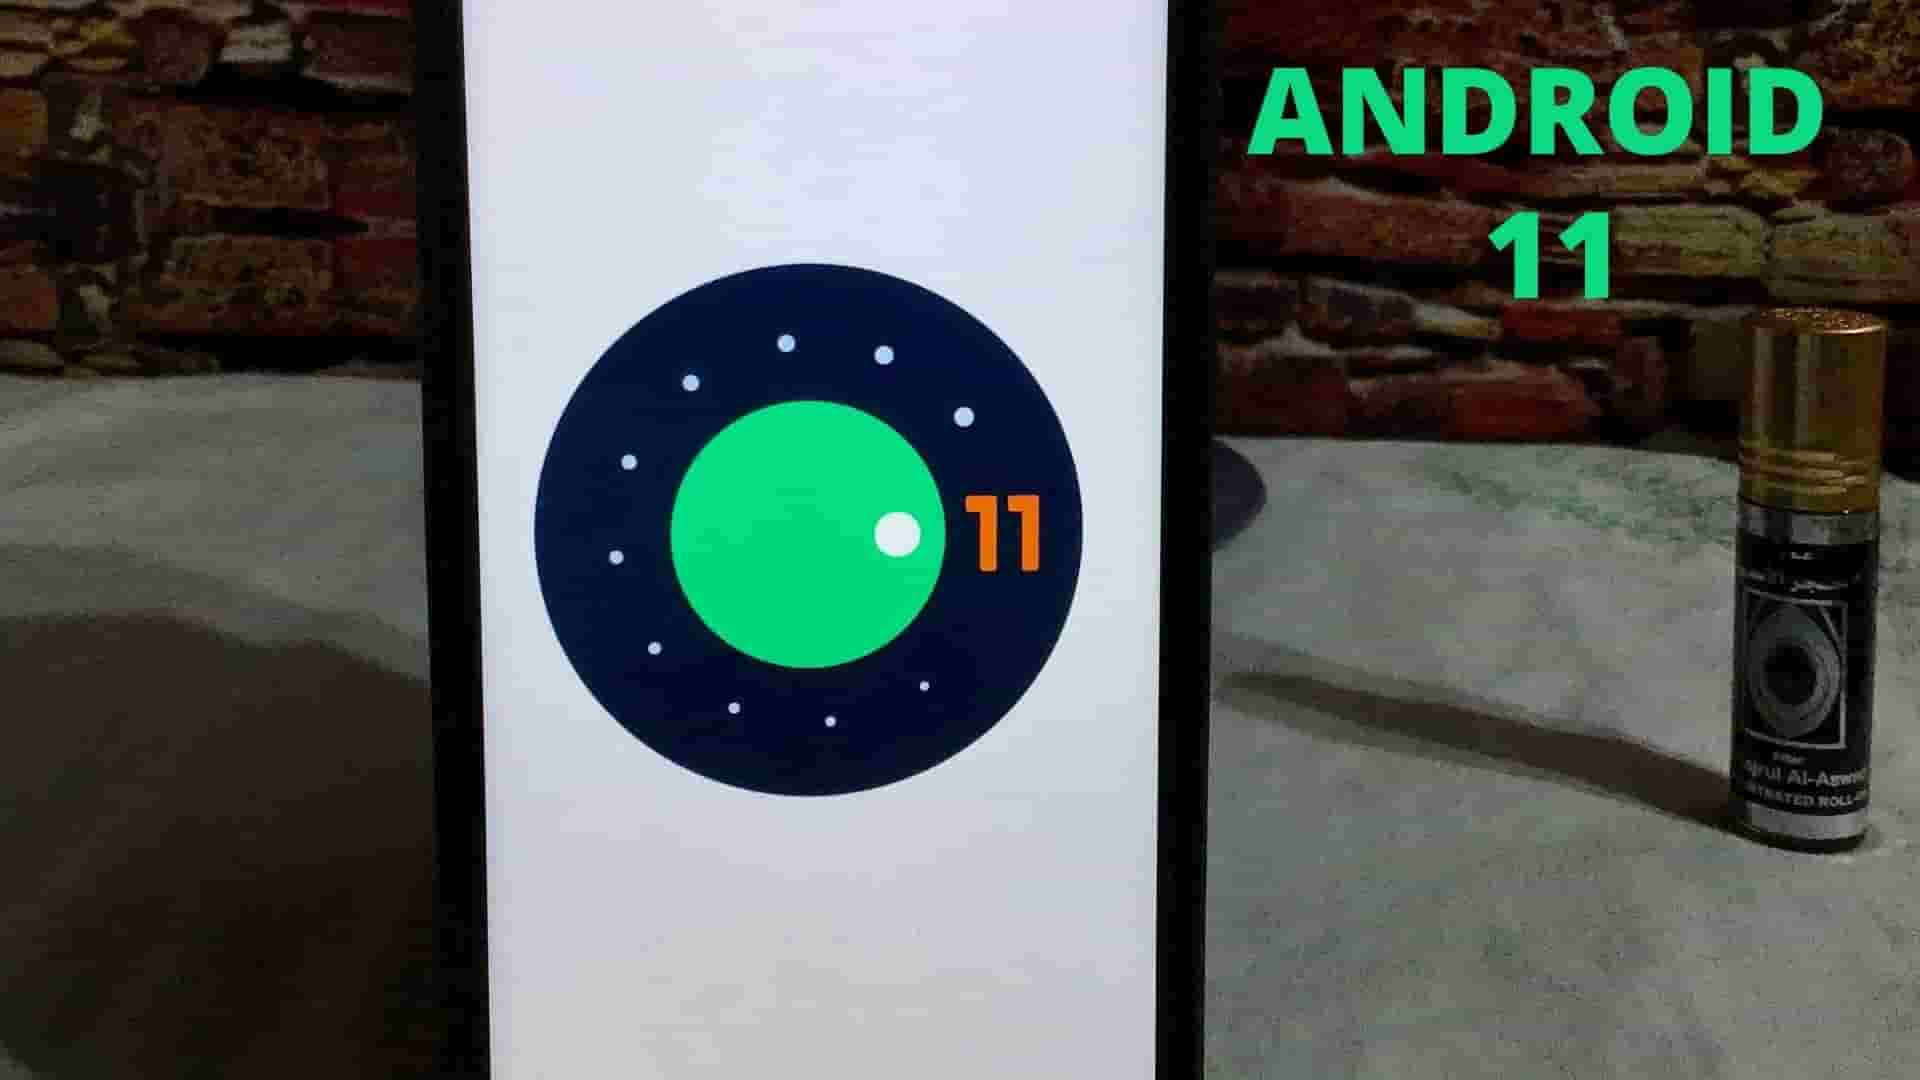 Android 11 | Features, Release date and Compatible Smartphones